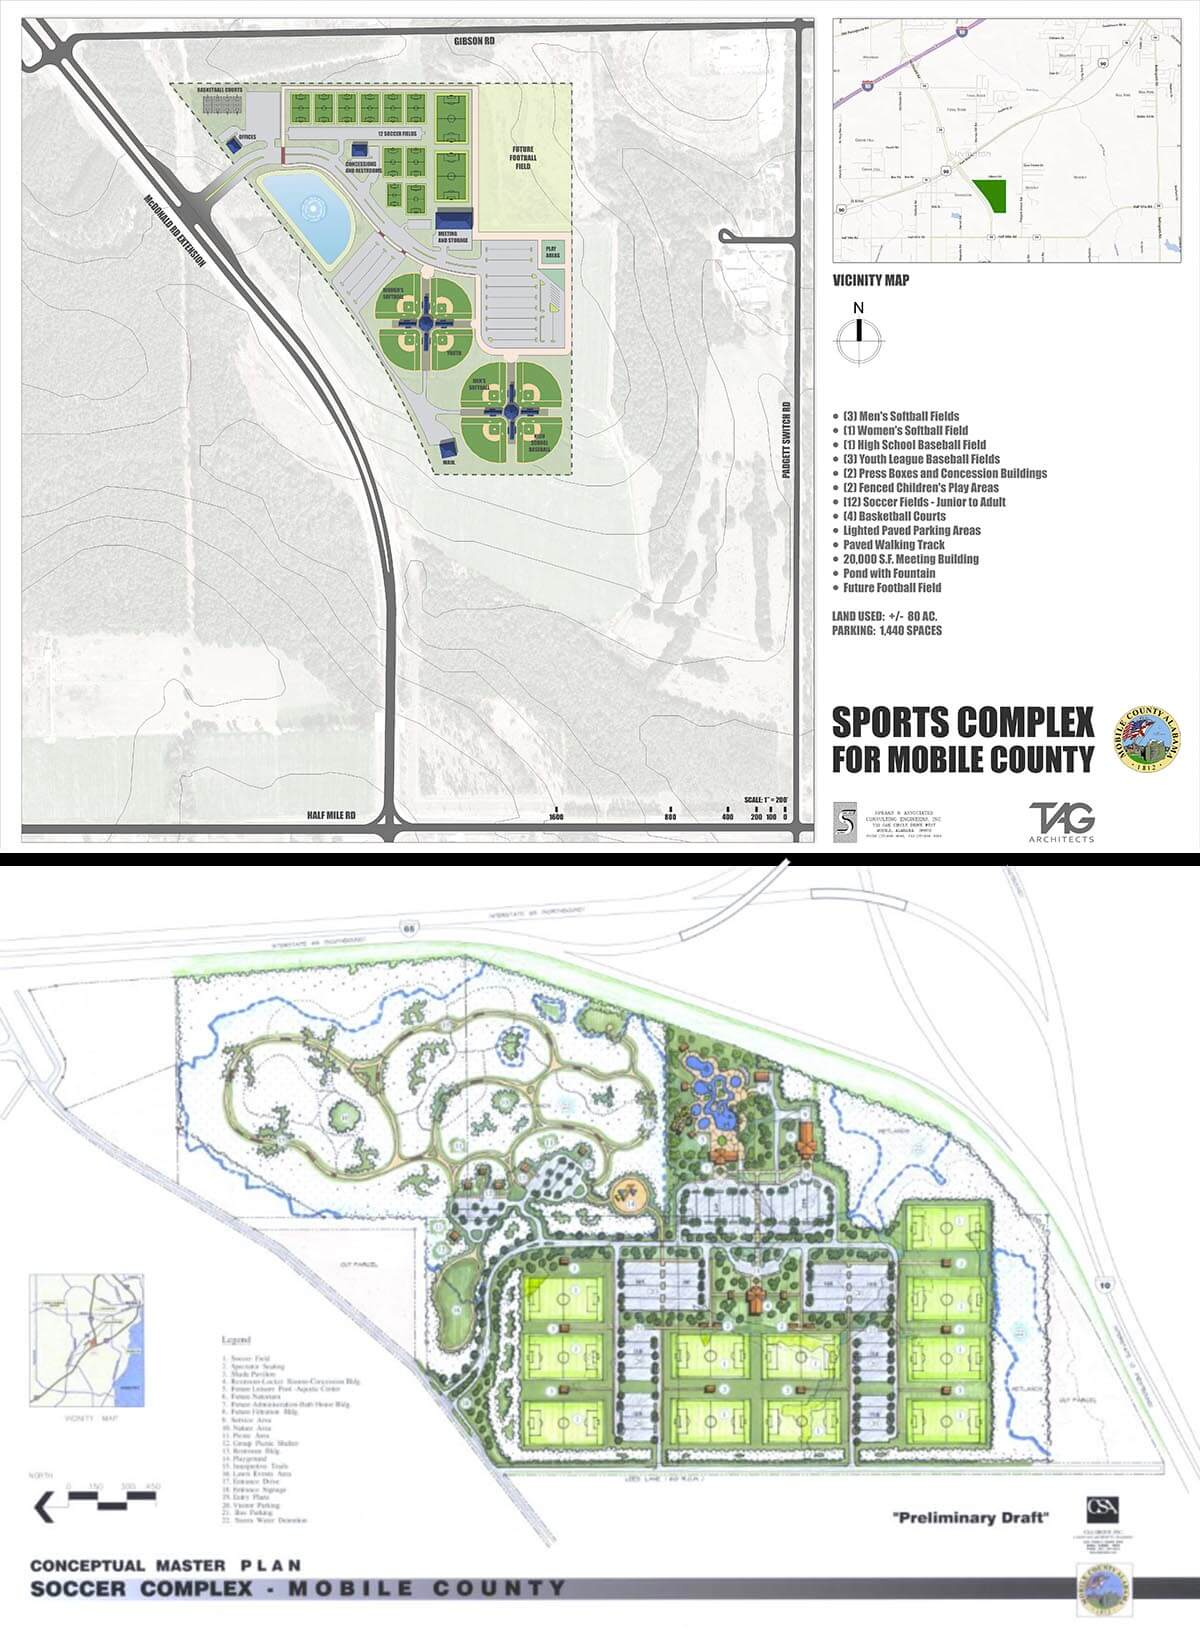 $40 million price tag attached to Hudson's soccer complex proposal